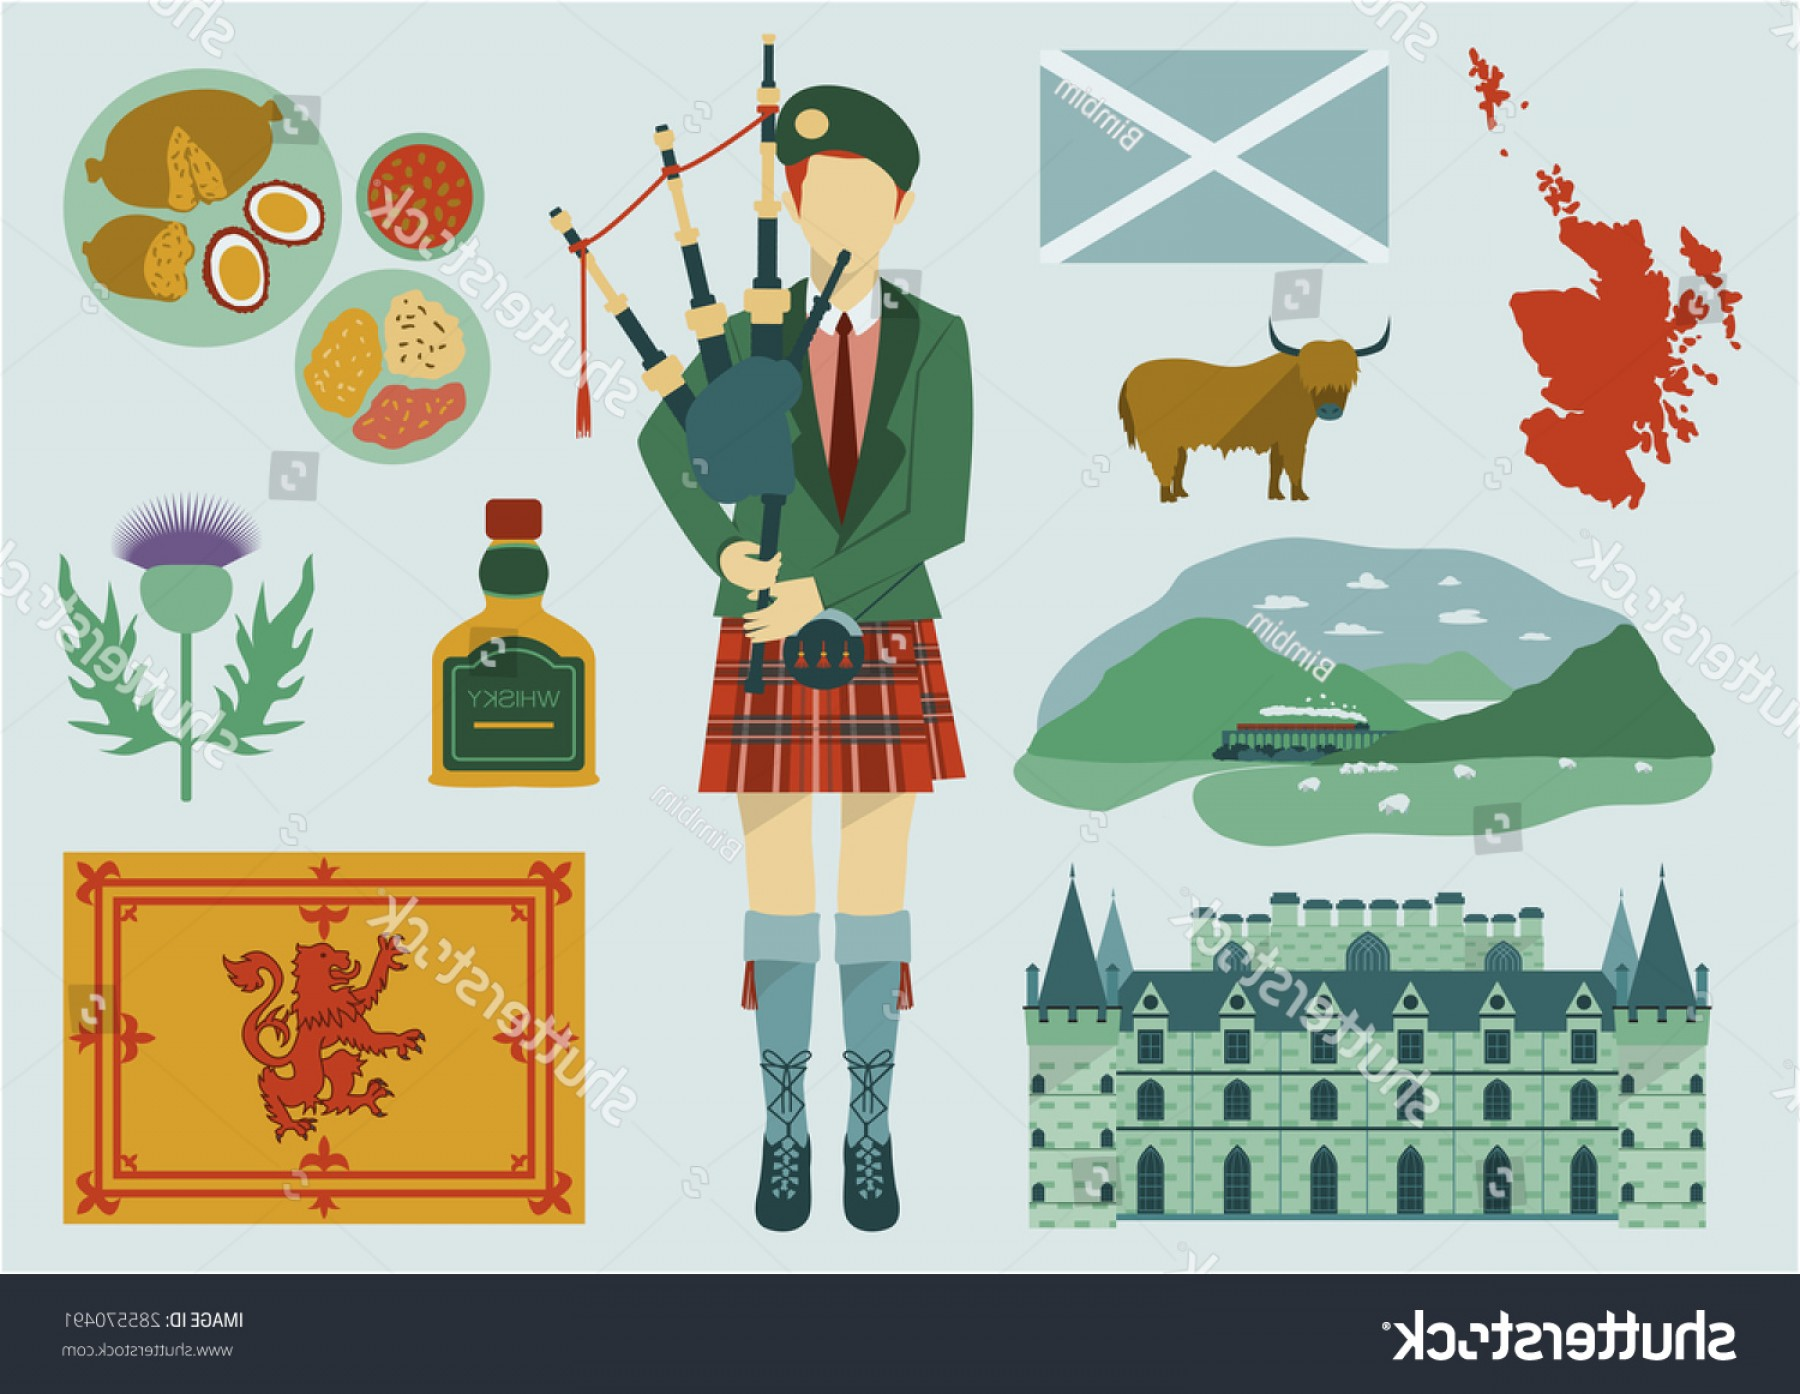 Scotland Heraldic Vector Graphic: All About Scotland Elements National Mapfoodtourist